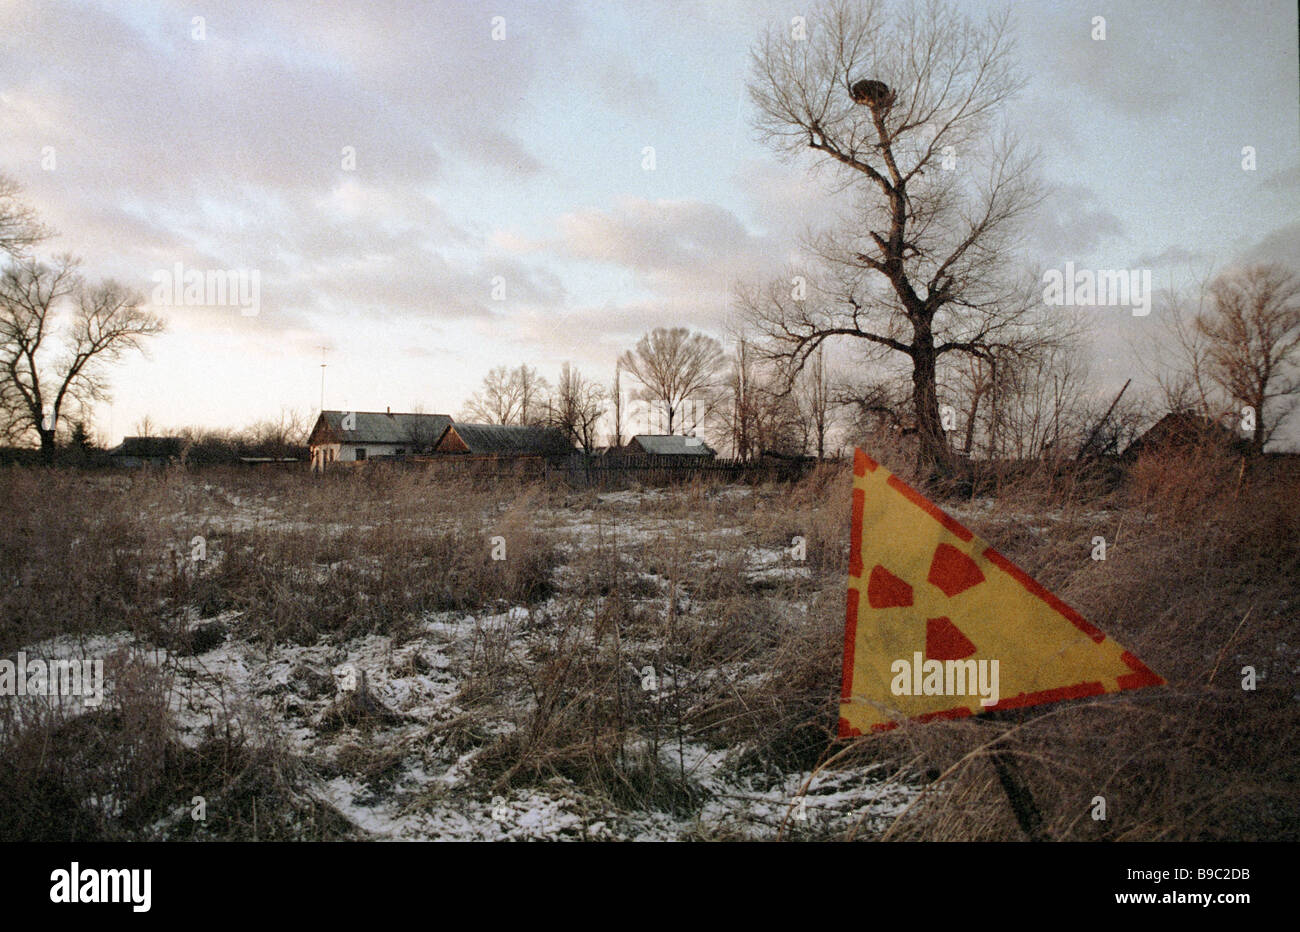 Area affected by Chernobyl nuclear disaster - Stock Image